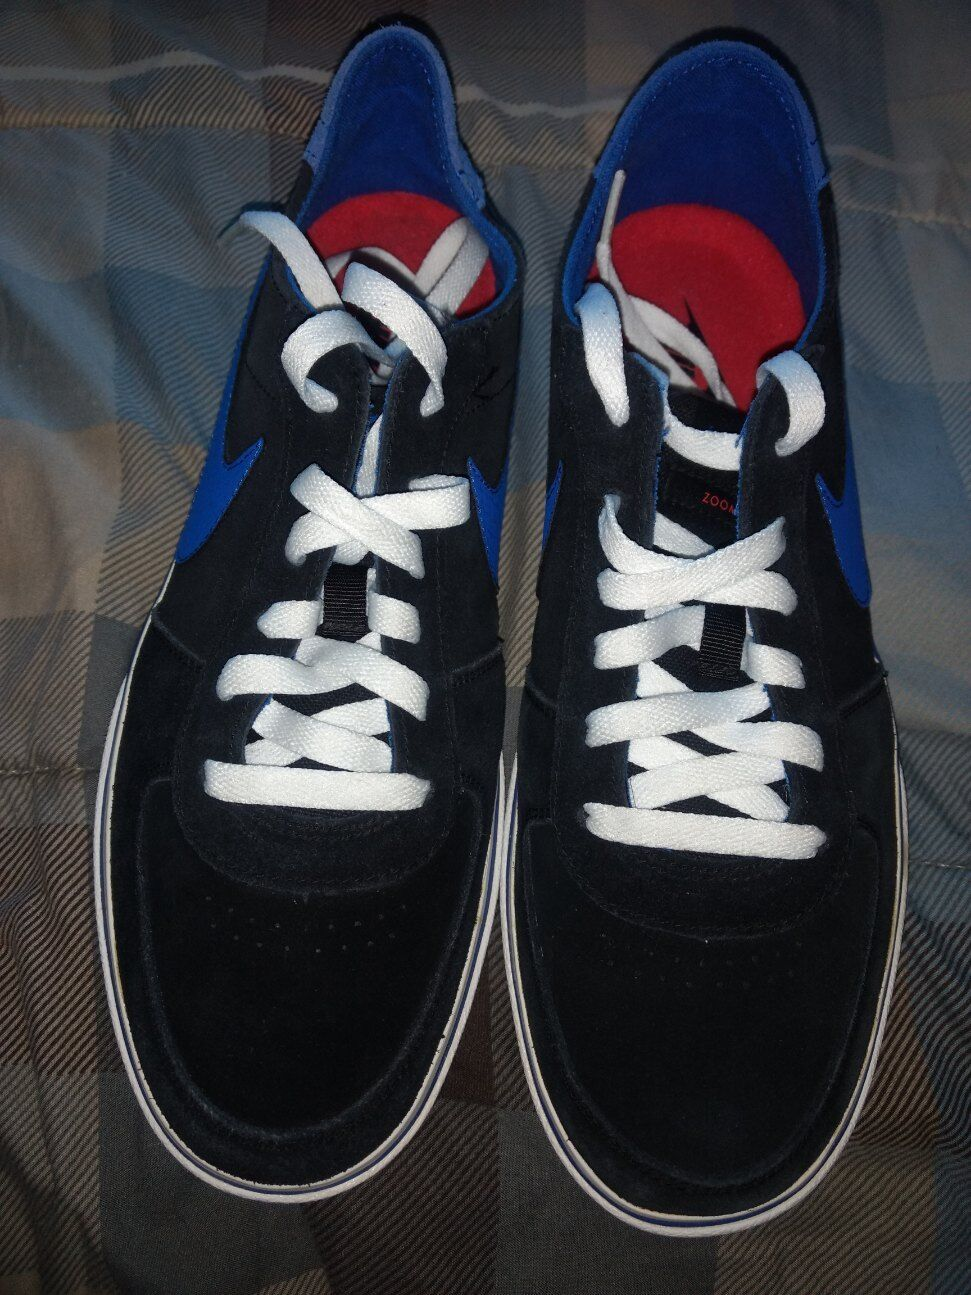 Nike 6.0 Zoom Marvk Men's Size 10 Black Blue Skater Shoes Skateboard 472617-041